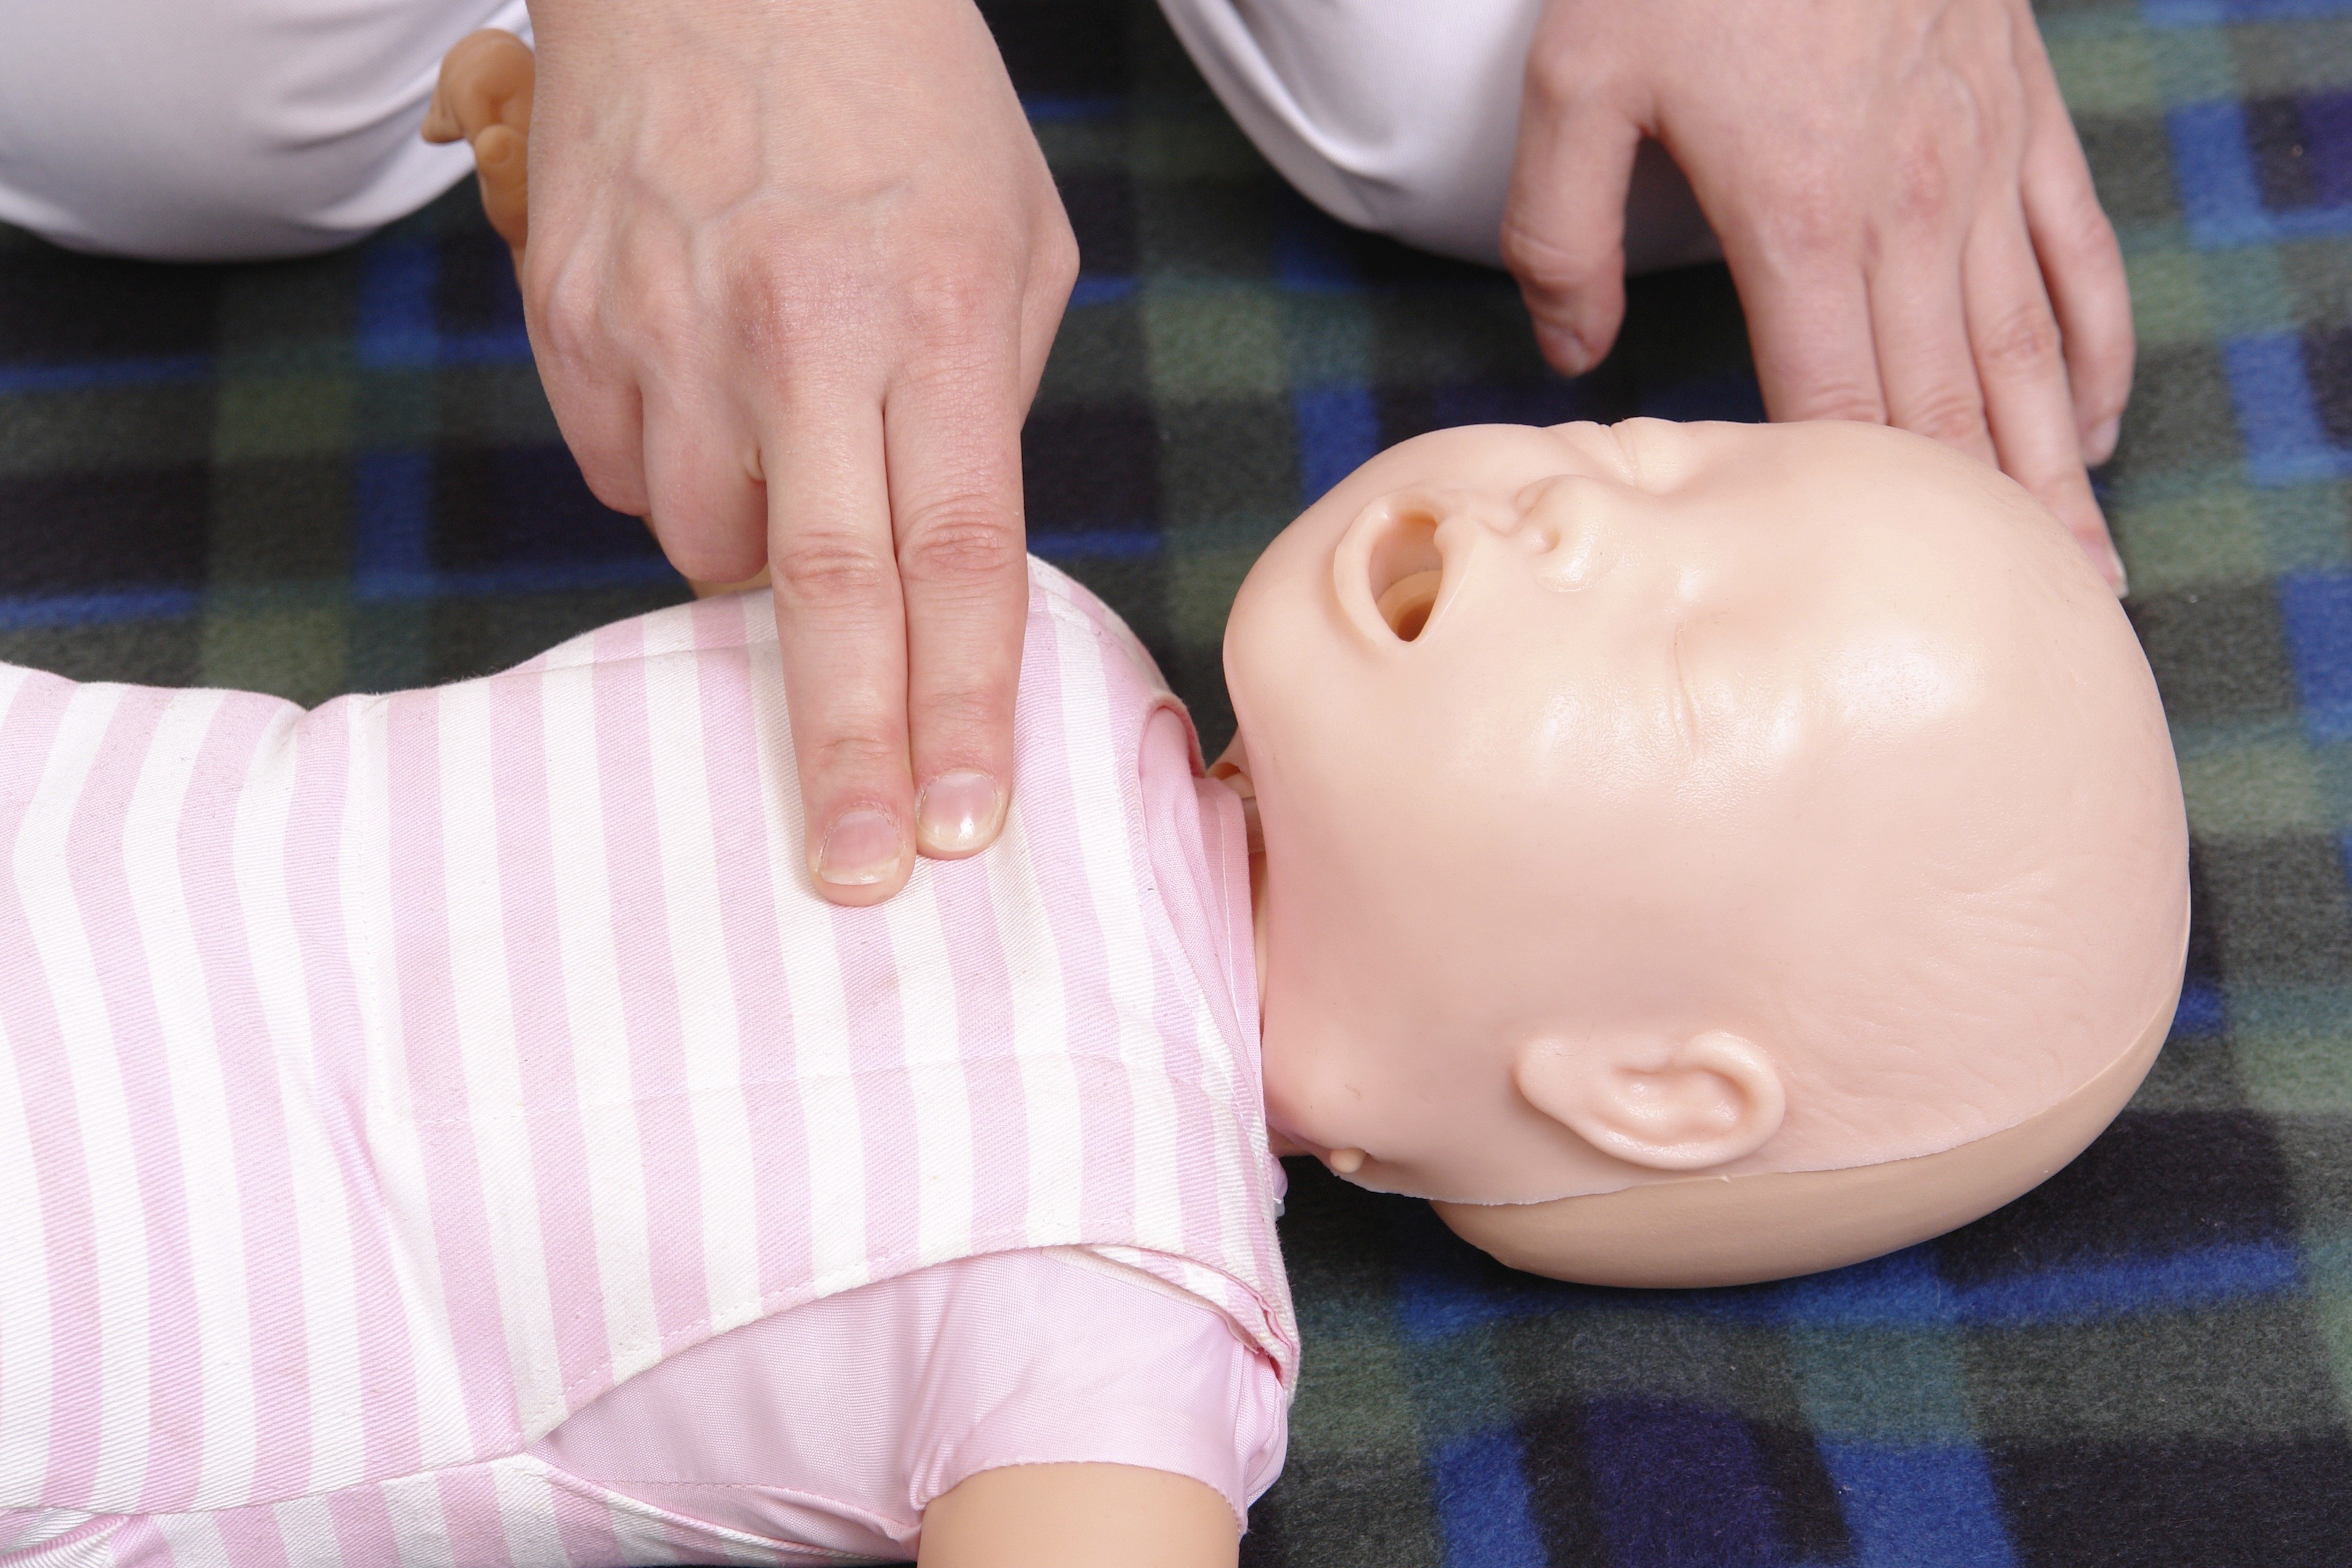 Bls study guide for american heart association classes berkeley infant and child bls cpr classes xflitez Images